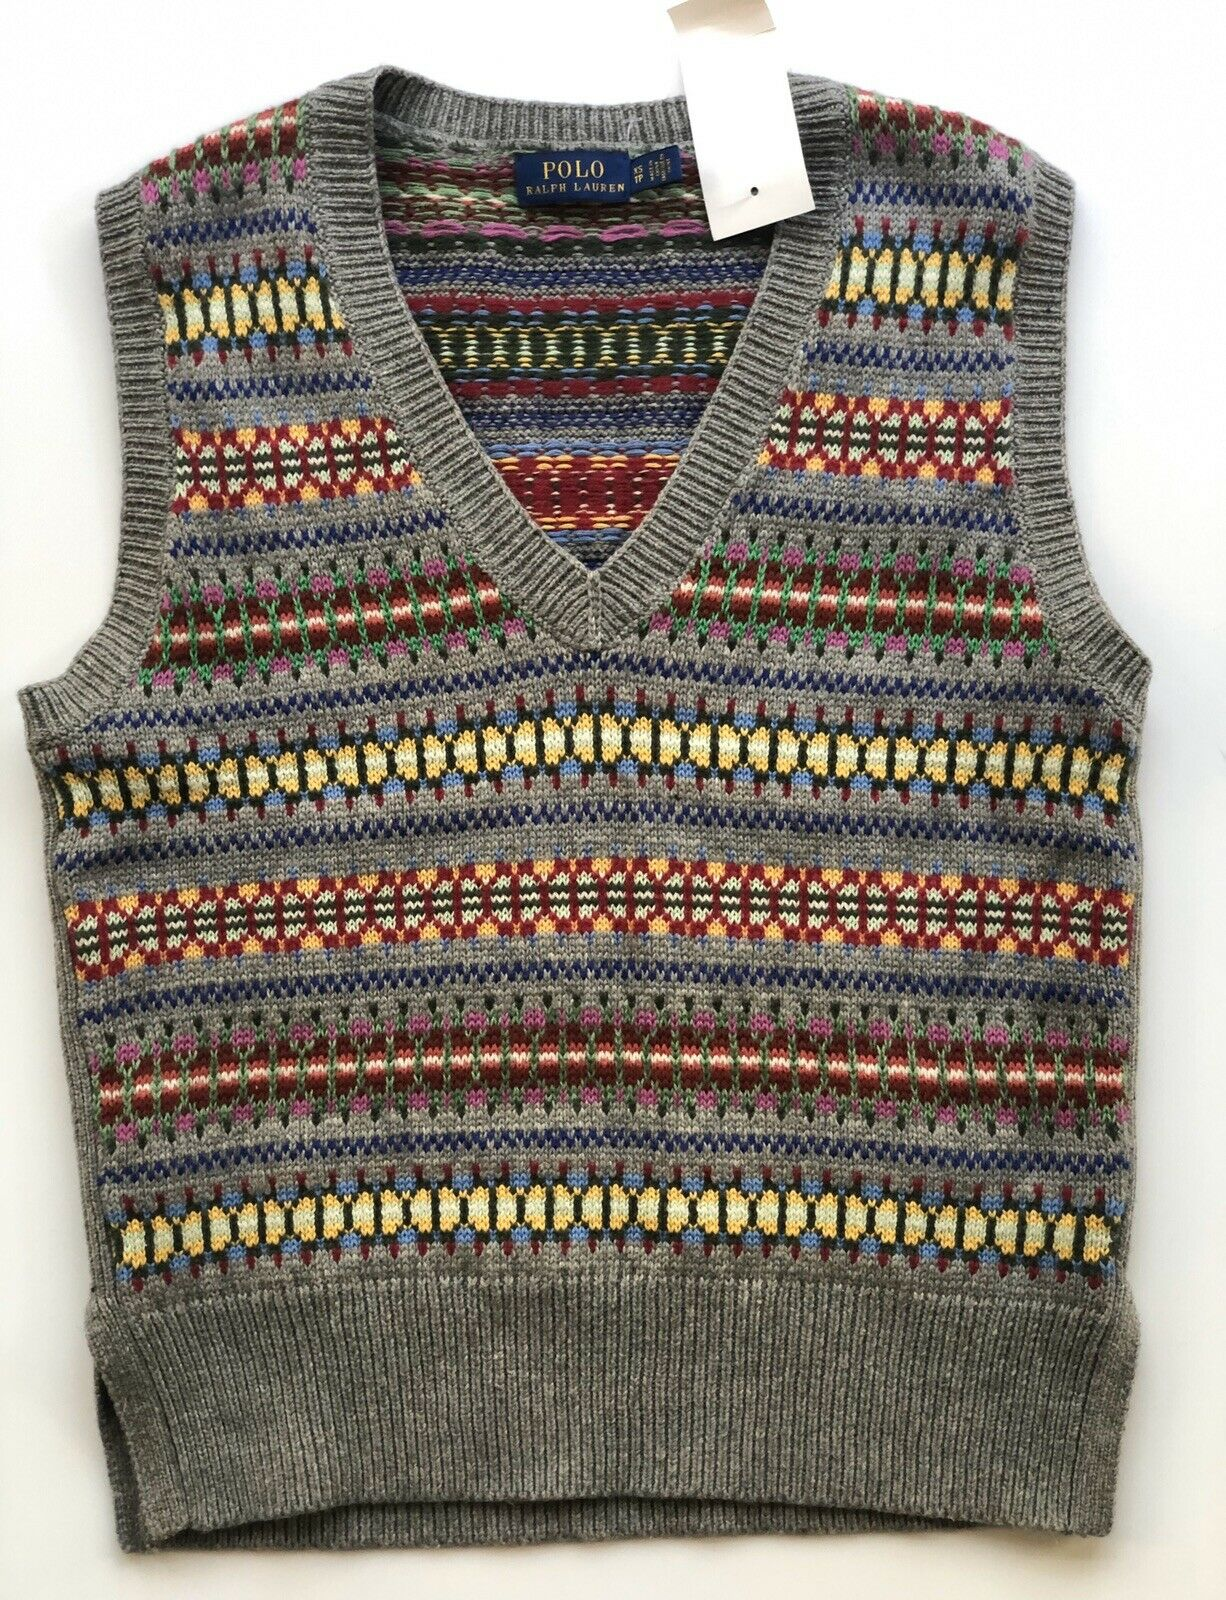 NWT $119 Polo Ralph Lauren Women's  Gray Sleeveless Sweater Size XS